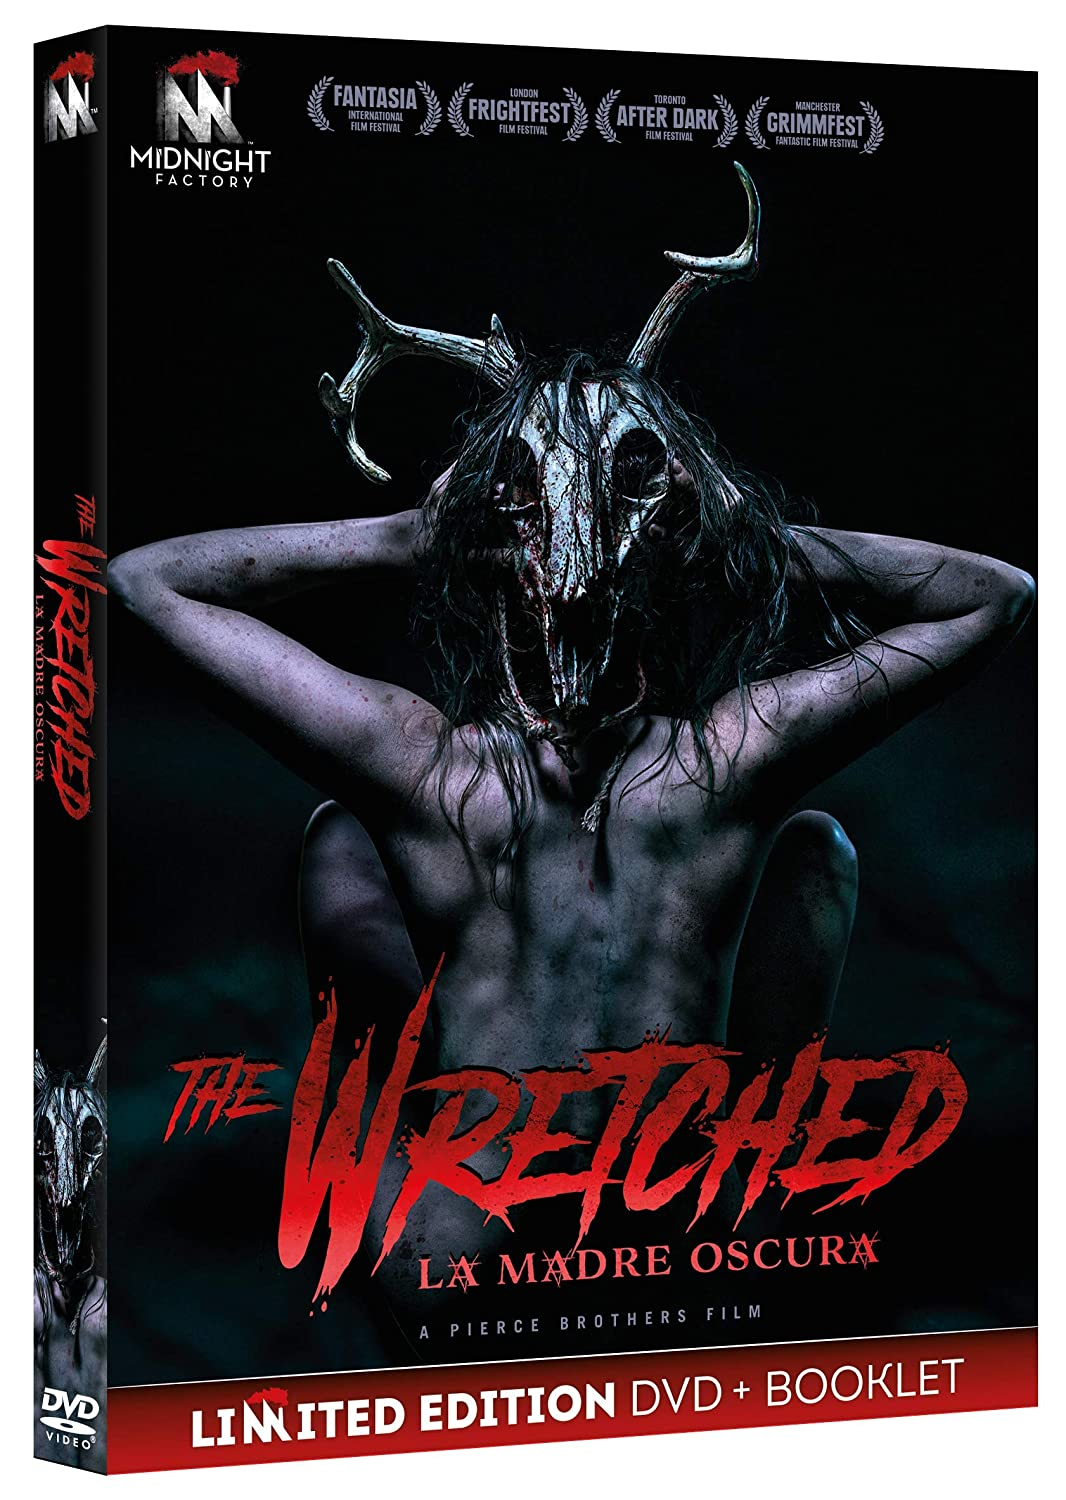 THE WRETCHED - LA MADRE OSCURA (DVD+BOOKLET) (DVD)